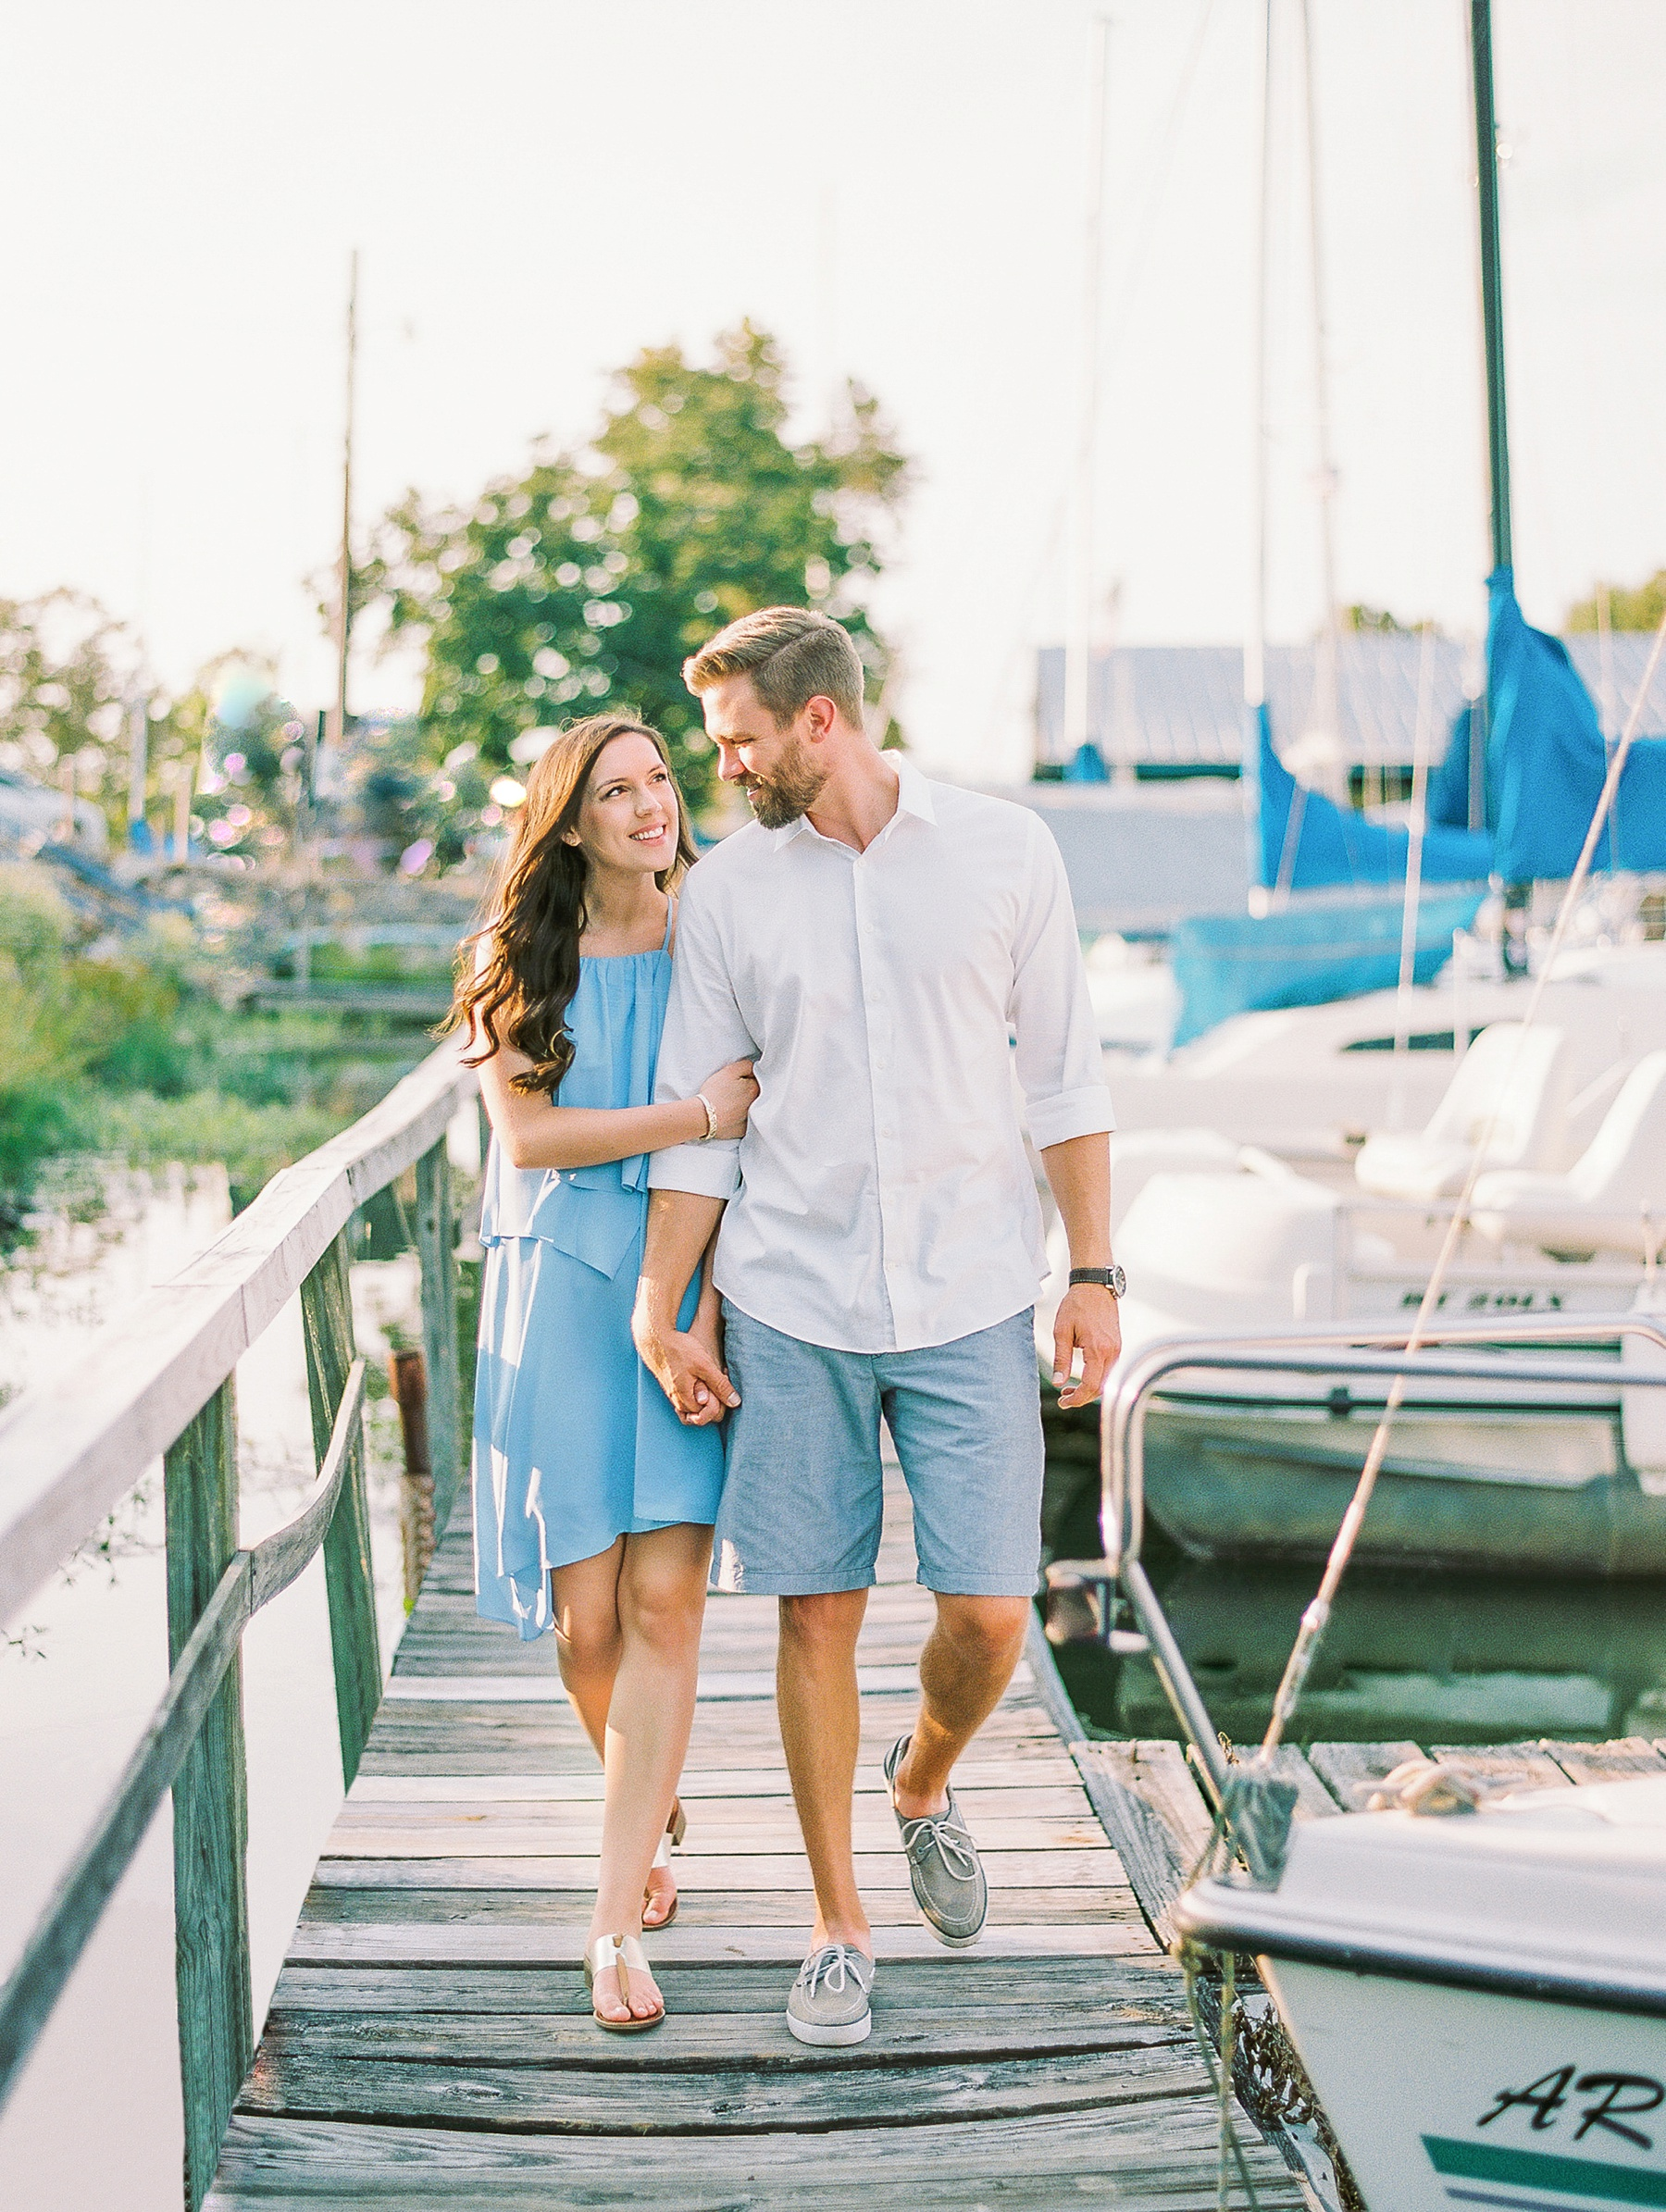 Nautical Boat Engagement Session Film Photographer_0558.jpg